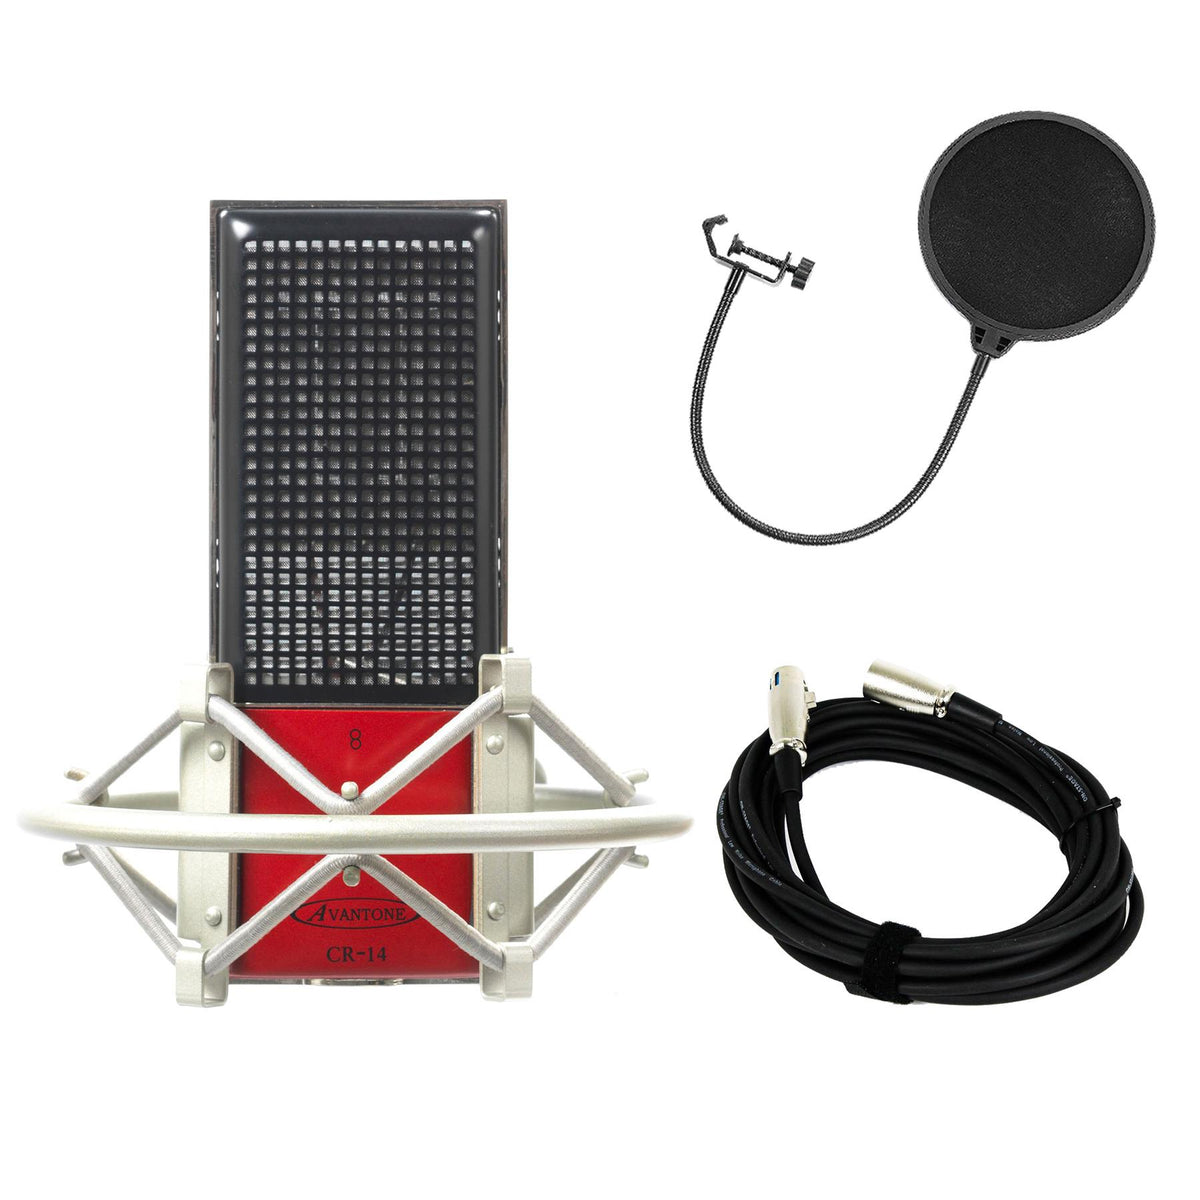 Avantone Pro CR14 Microphone Bundle with 20-foot XLR Cable & Pop Filter